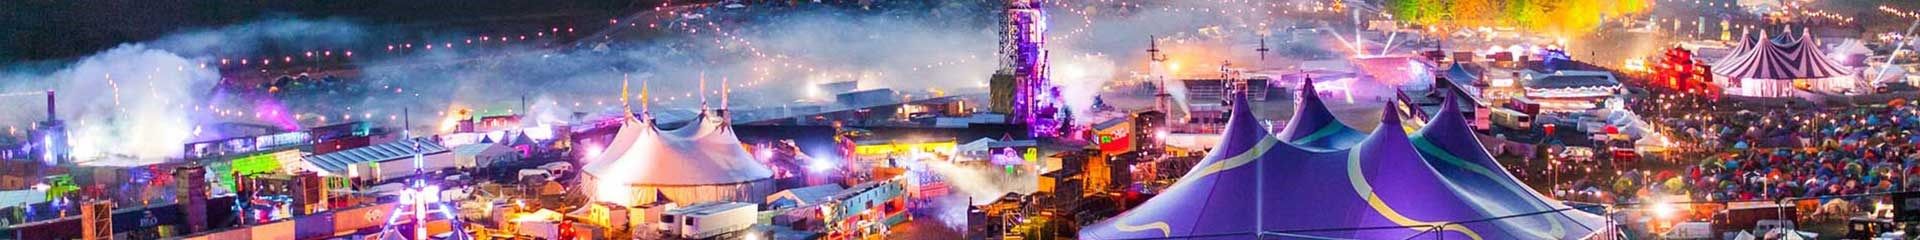 Visit Boomtown Fair with National Express